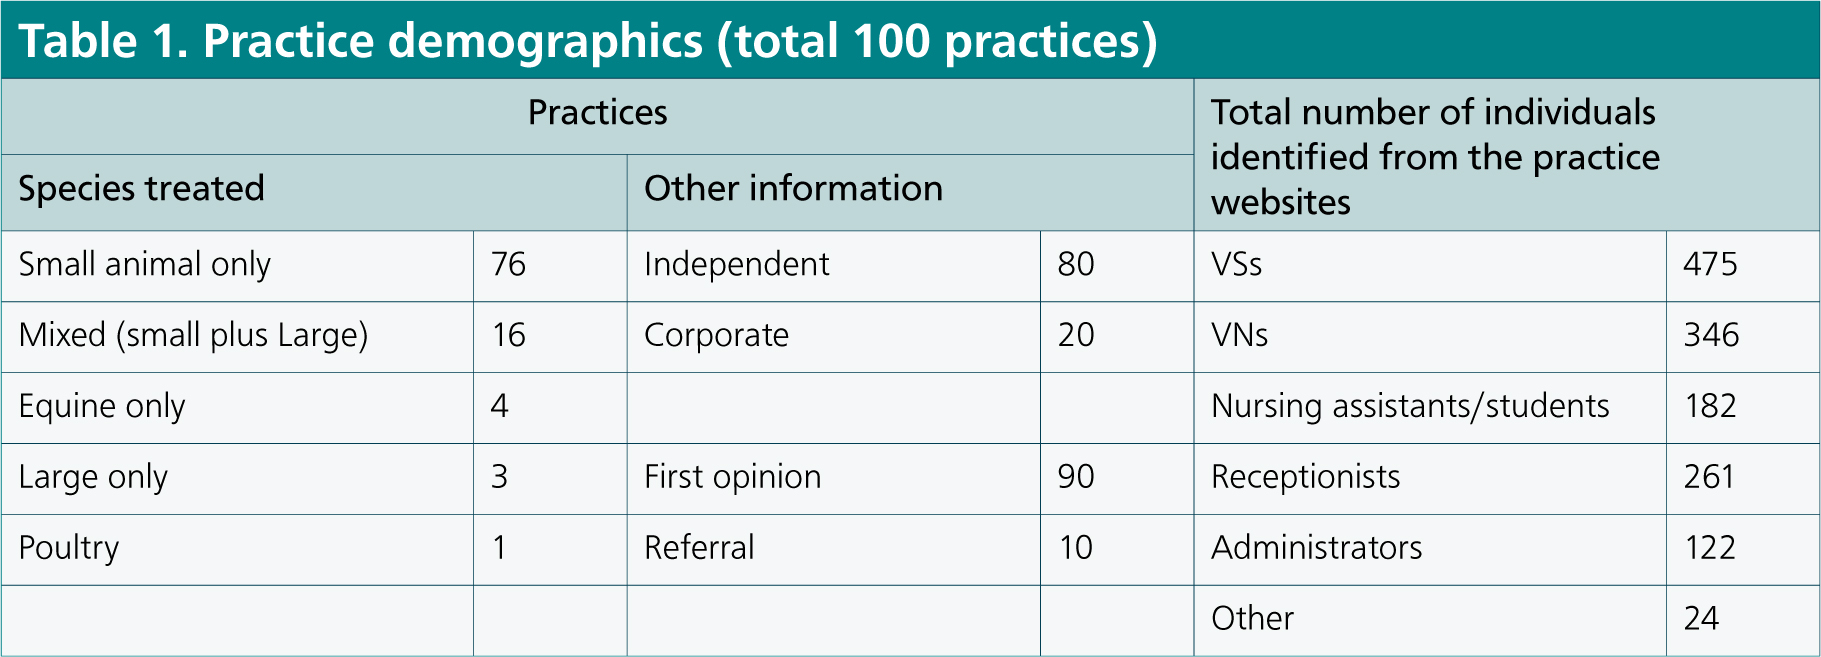 Portrayal of professions and occupations on veterinary practice websites and the potential for influencing public perceptions